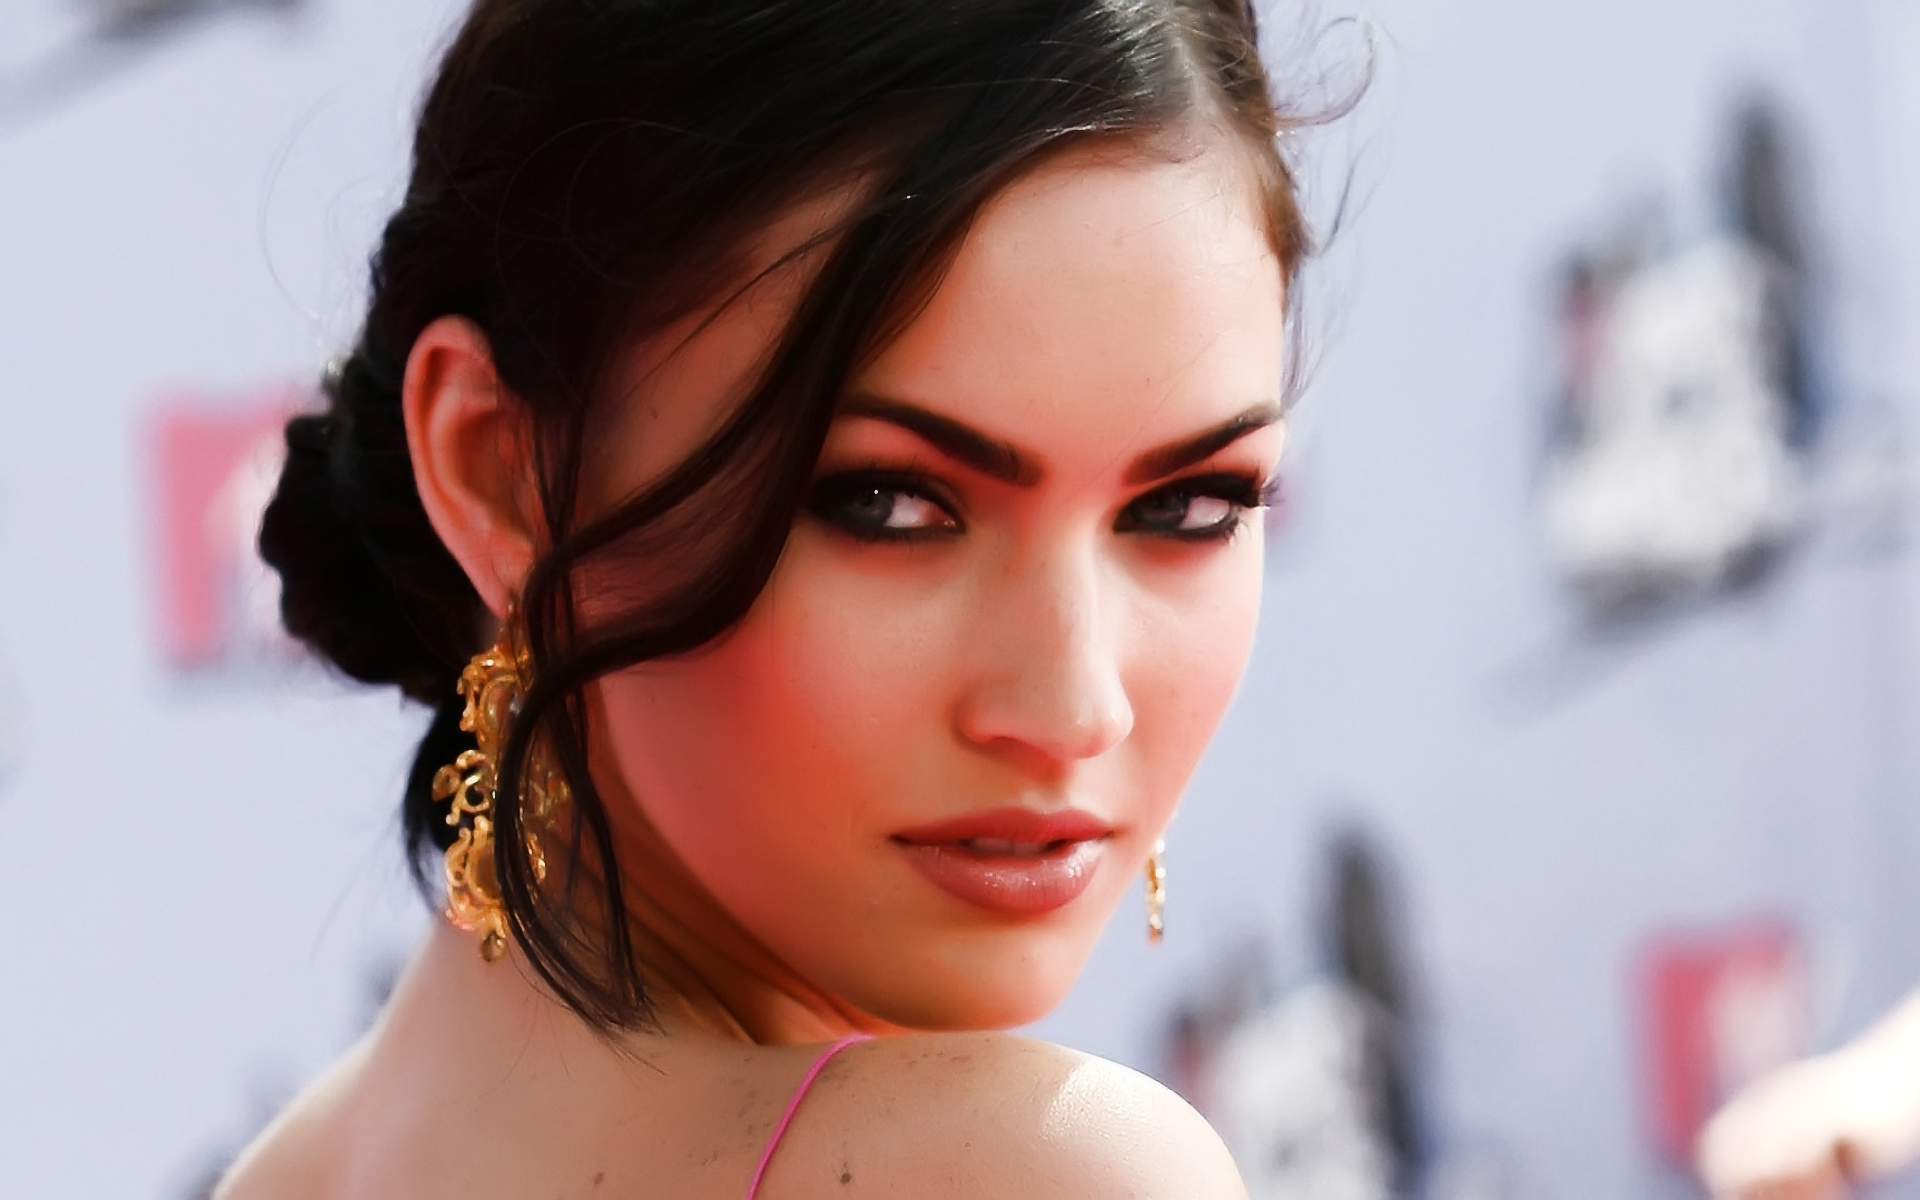 fwallpapernetpicsCelebritiesmegan foxMegan fox hd wallpapersjpg 1920x1200